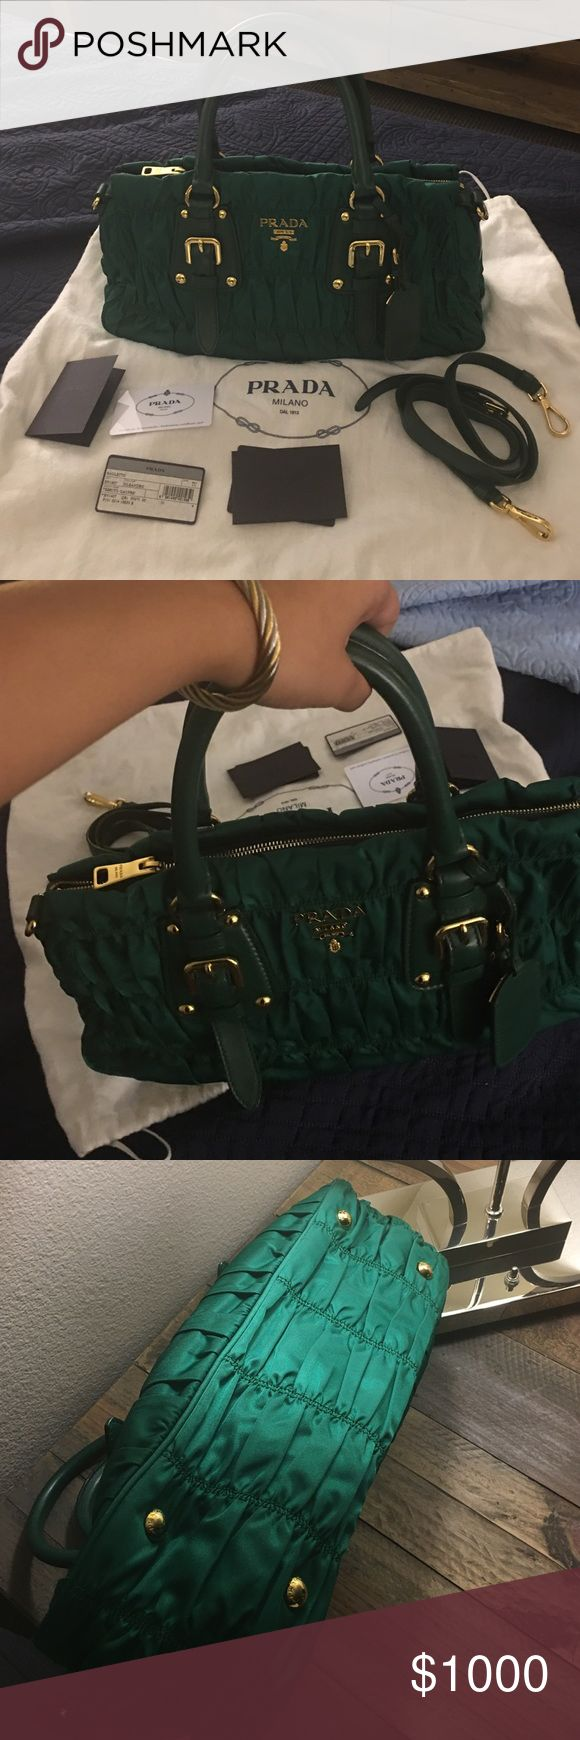 Iconic Prada bag for sale no trades no damage, rips, tears, smell. Prada BN1407 Tessuto Gaufre Tote- Oleandro (Green) Top Zip closure, Double Handle, Detachable shoulder strap, Signature Nylon in Gold-plated hardware, Metal Lettering Logo, Three inside pocket, One zipper pocket, Prada logo lining. Comes with leather strap, no fading in hardware, with certificate card etc no receipt. Selling only Prada Bags